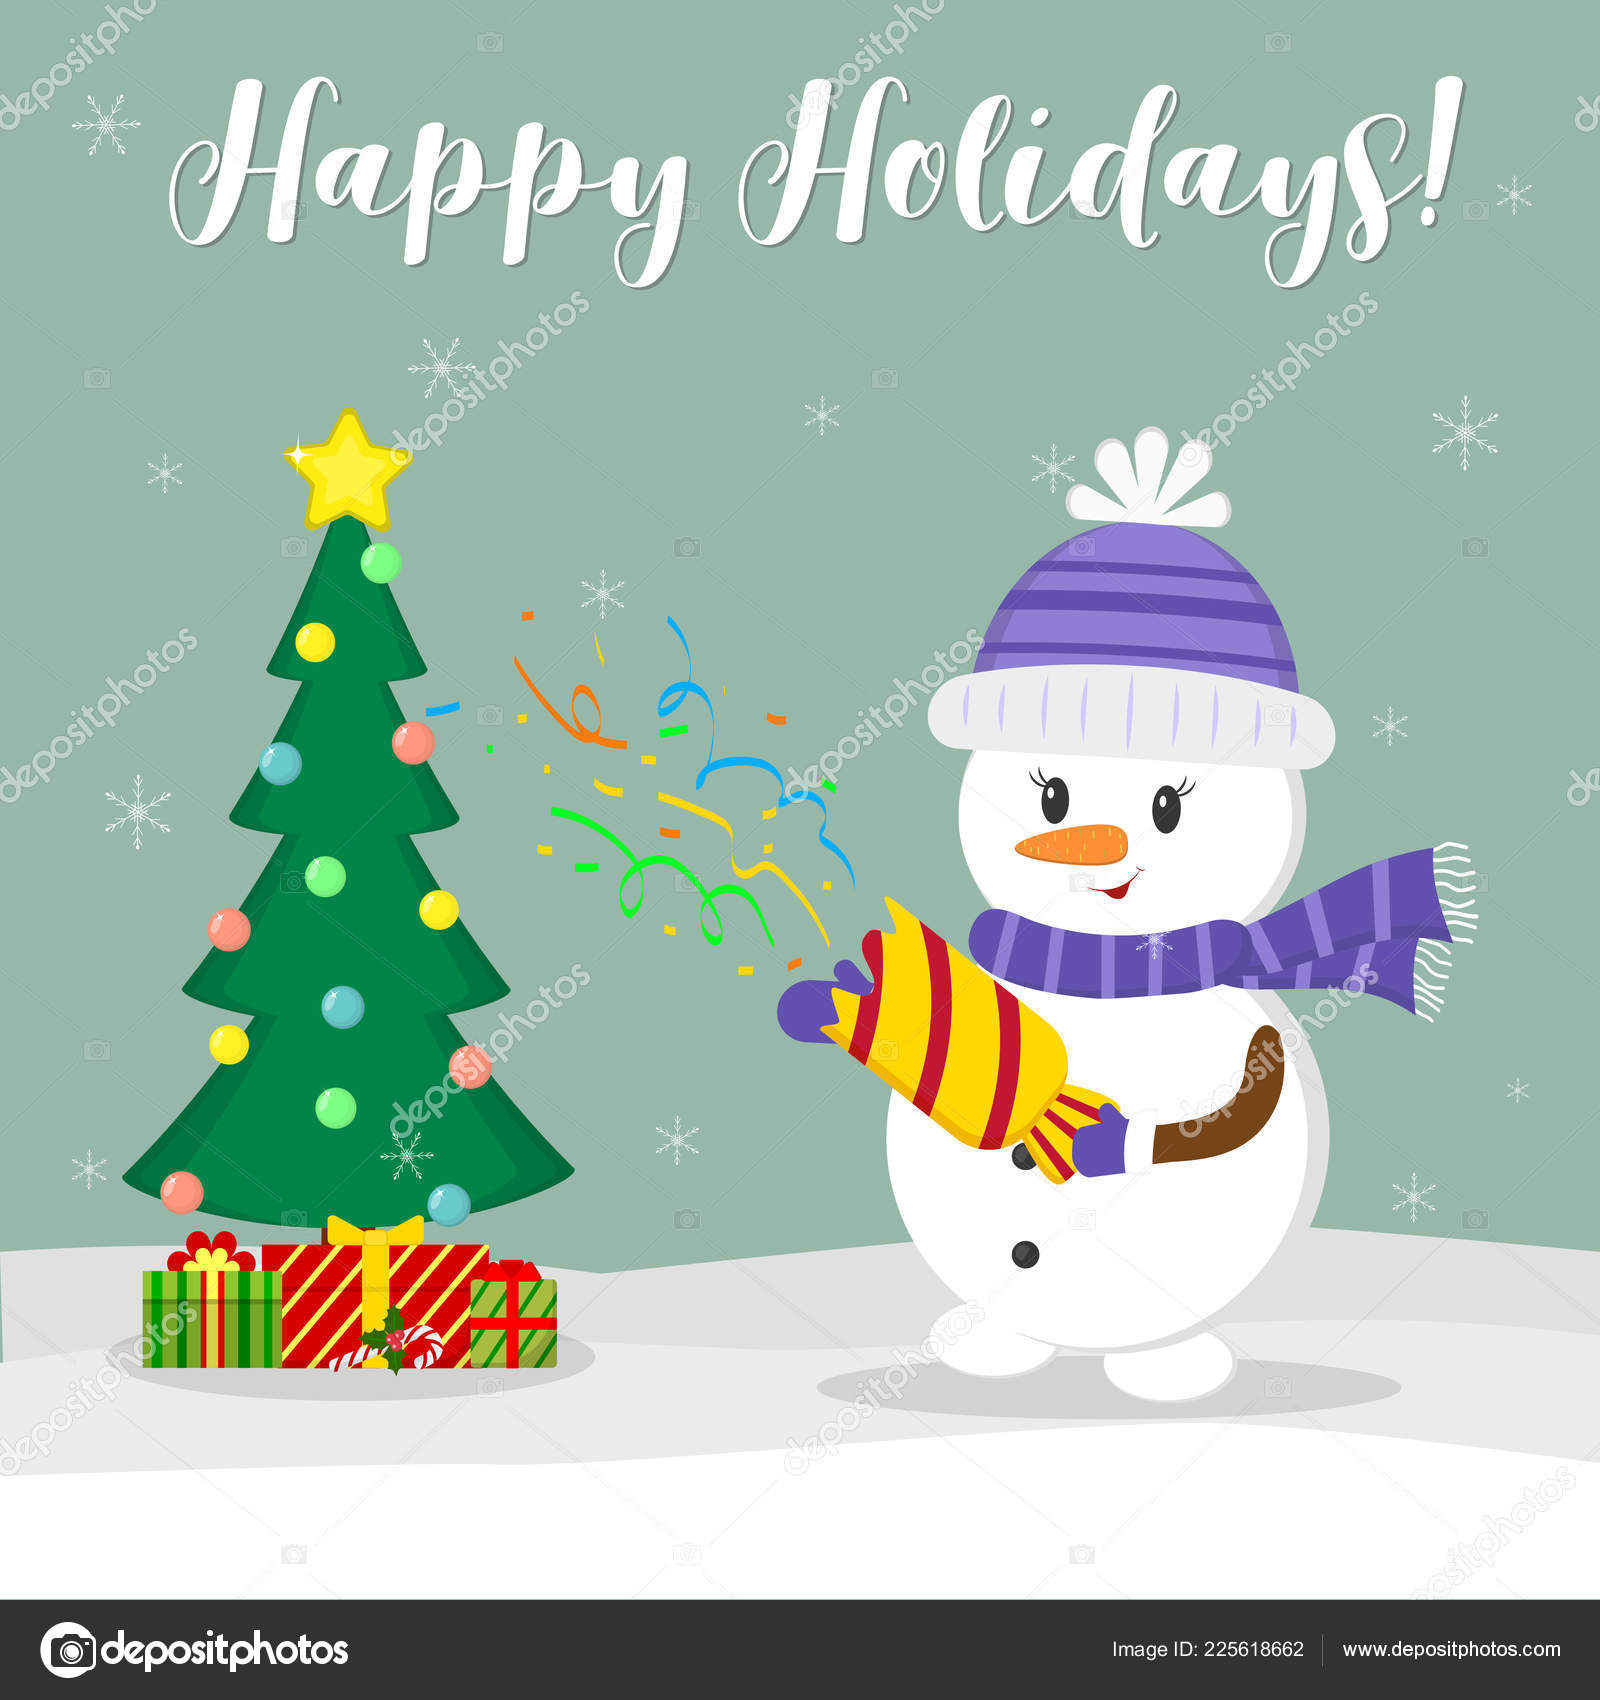 new year and christmas card cute snowman in a hat and scarf holding a cracker with confetti christmas tree ik orobki with gifts in winter against the